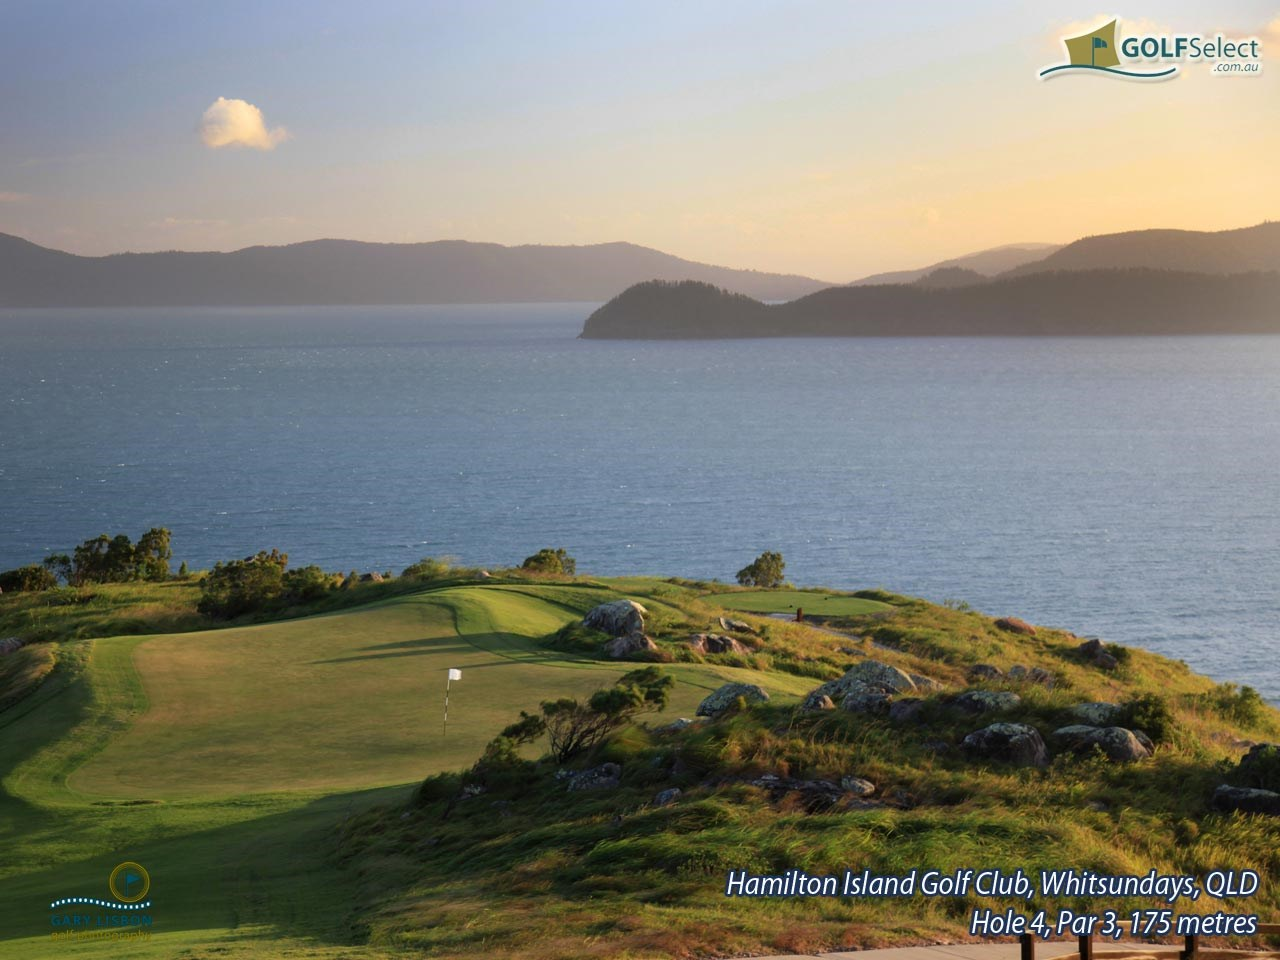 Hamilton Island Golf Club Hole 4, Par 3, 175 metres